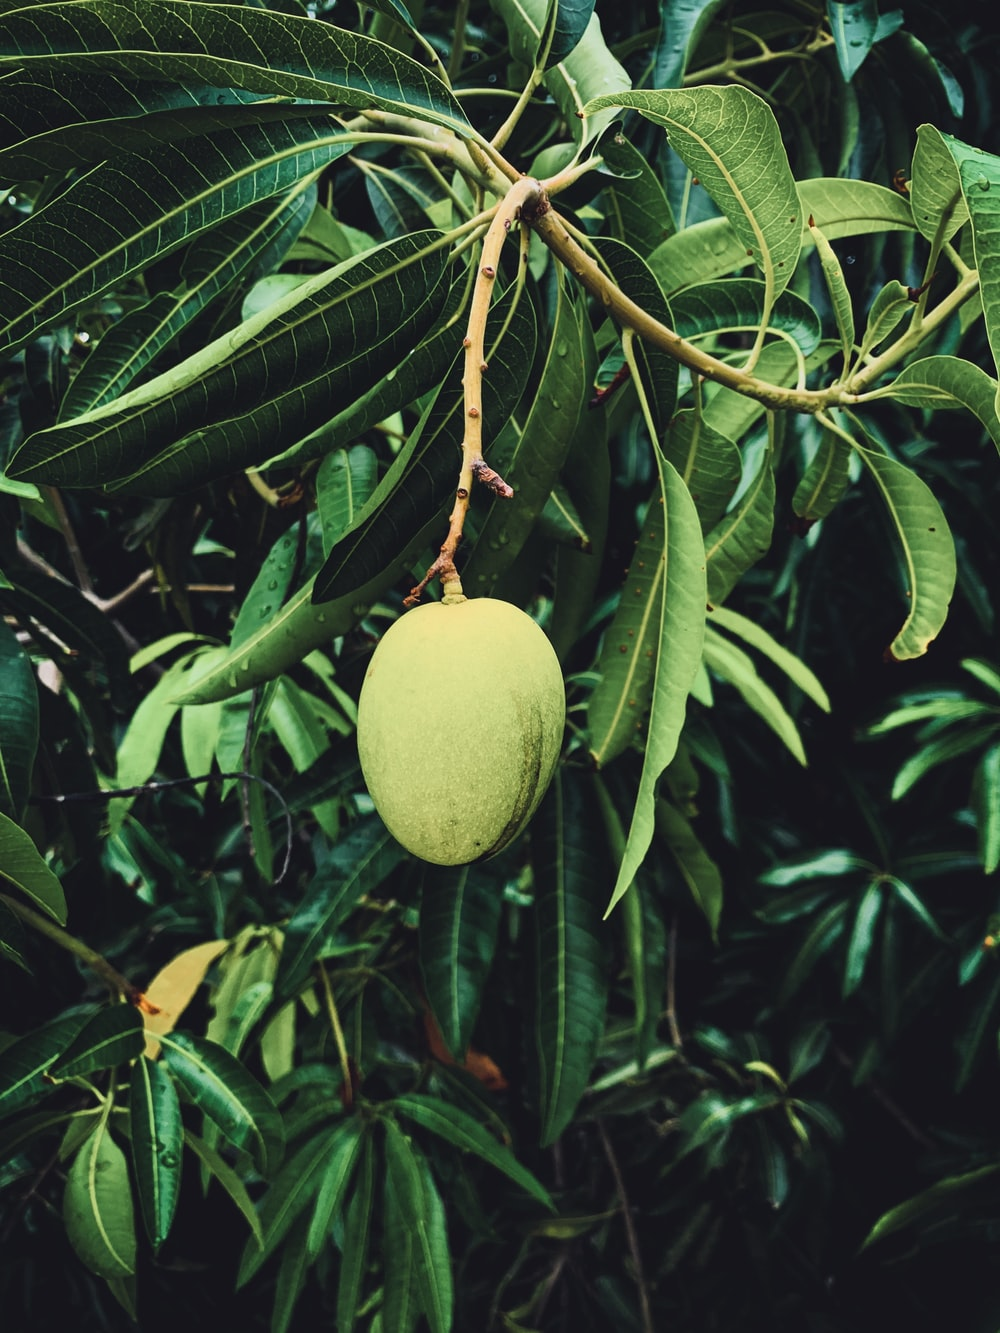 yellow round fruit on green leaves